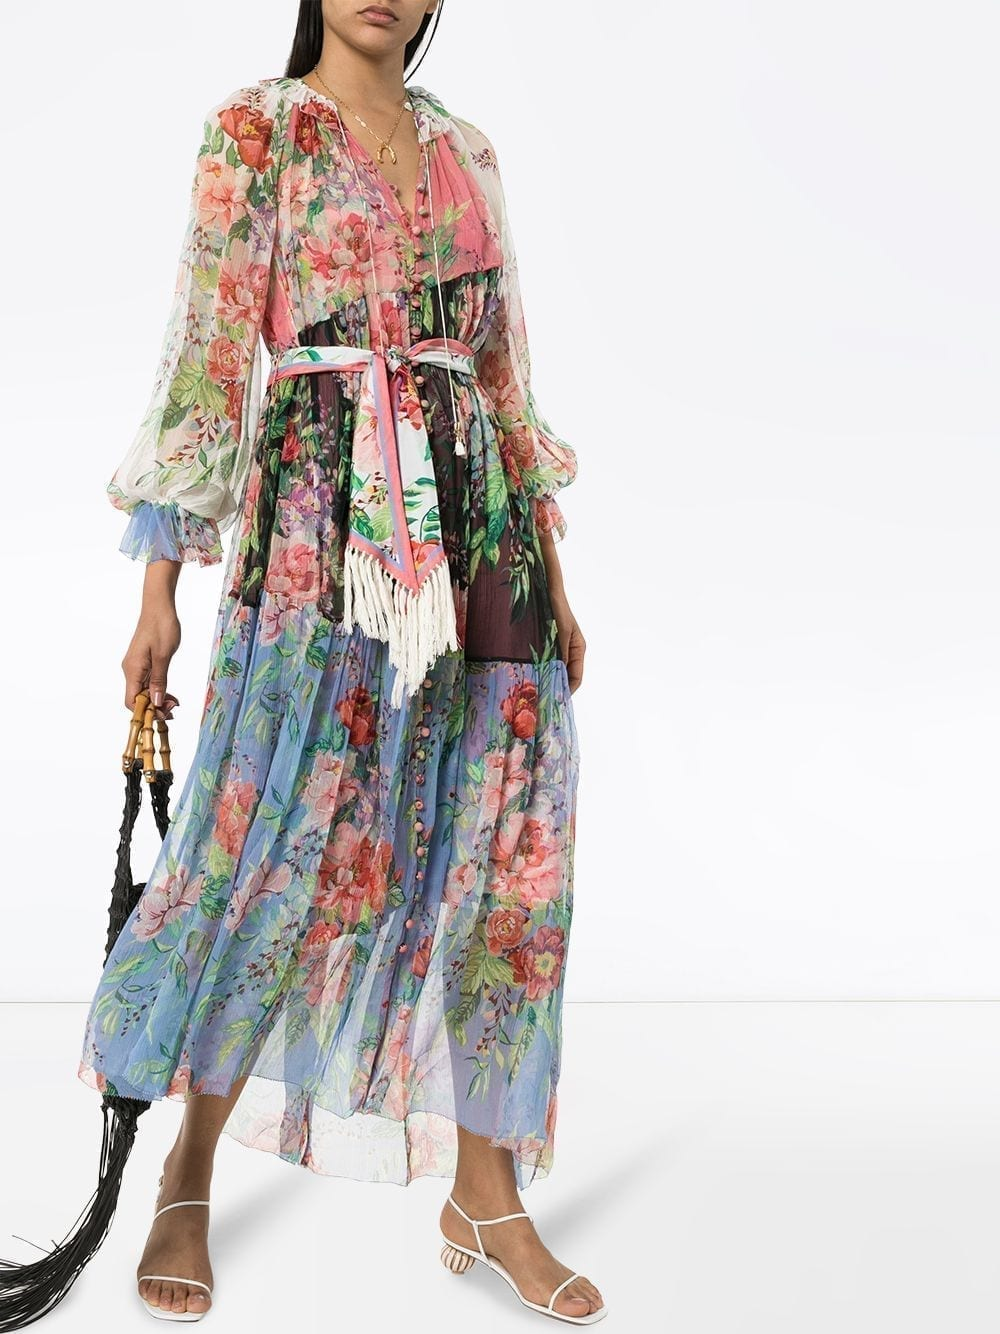 ZIMMERMANN Bellistude Panelled Floral-Print Dress